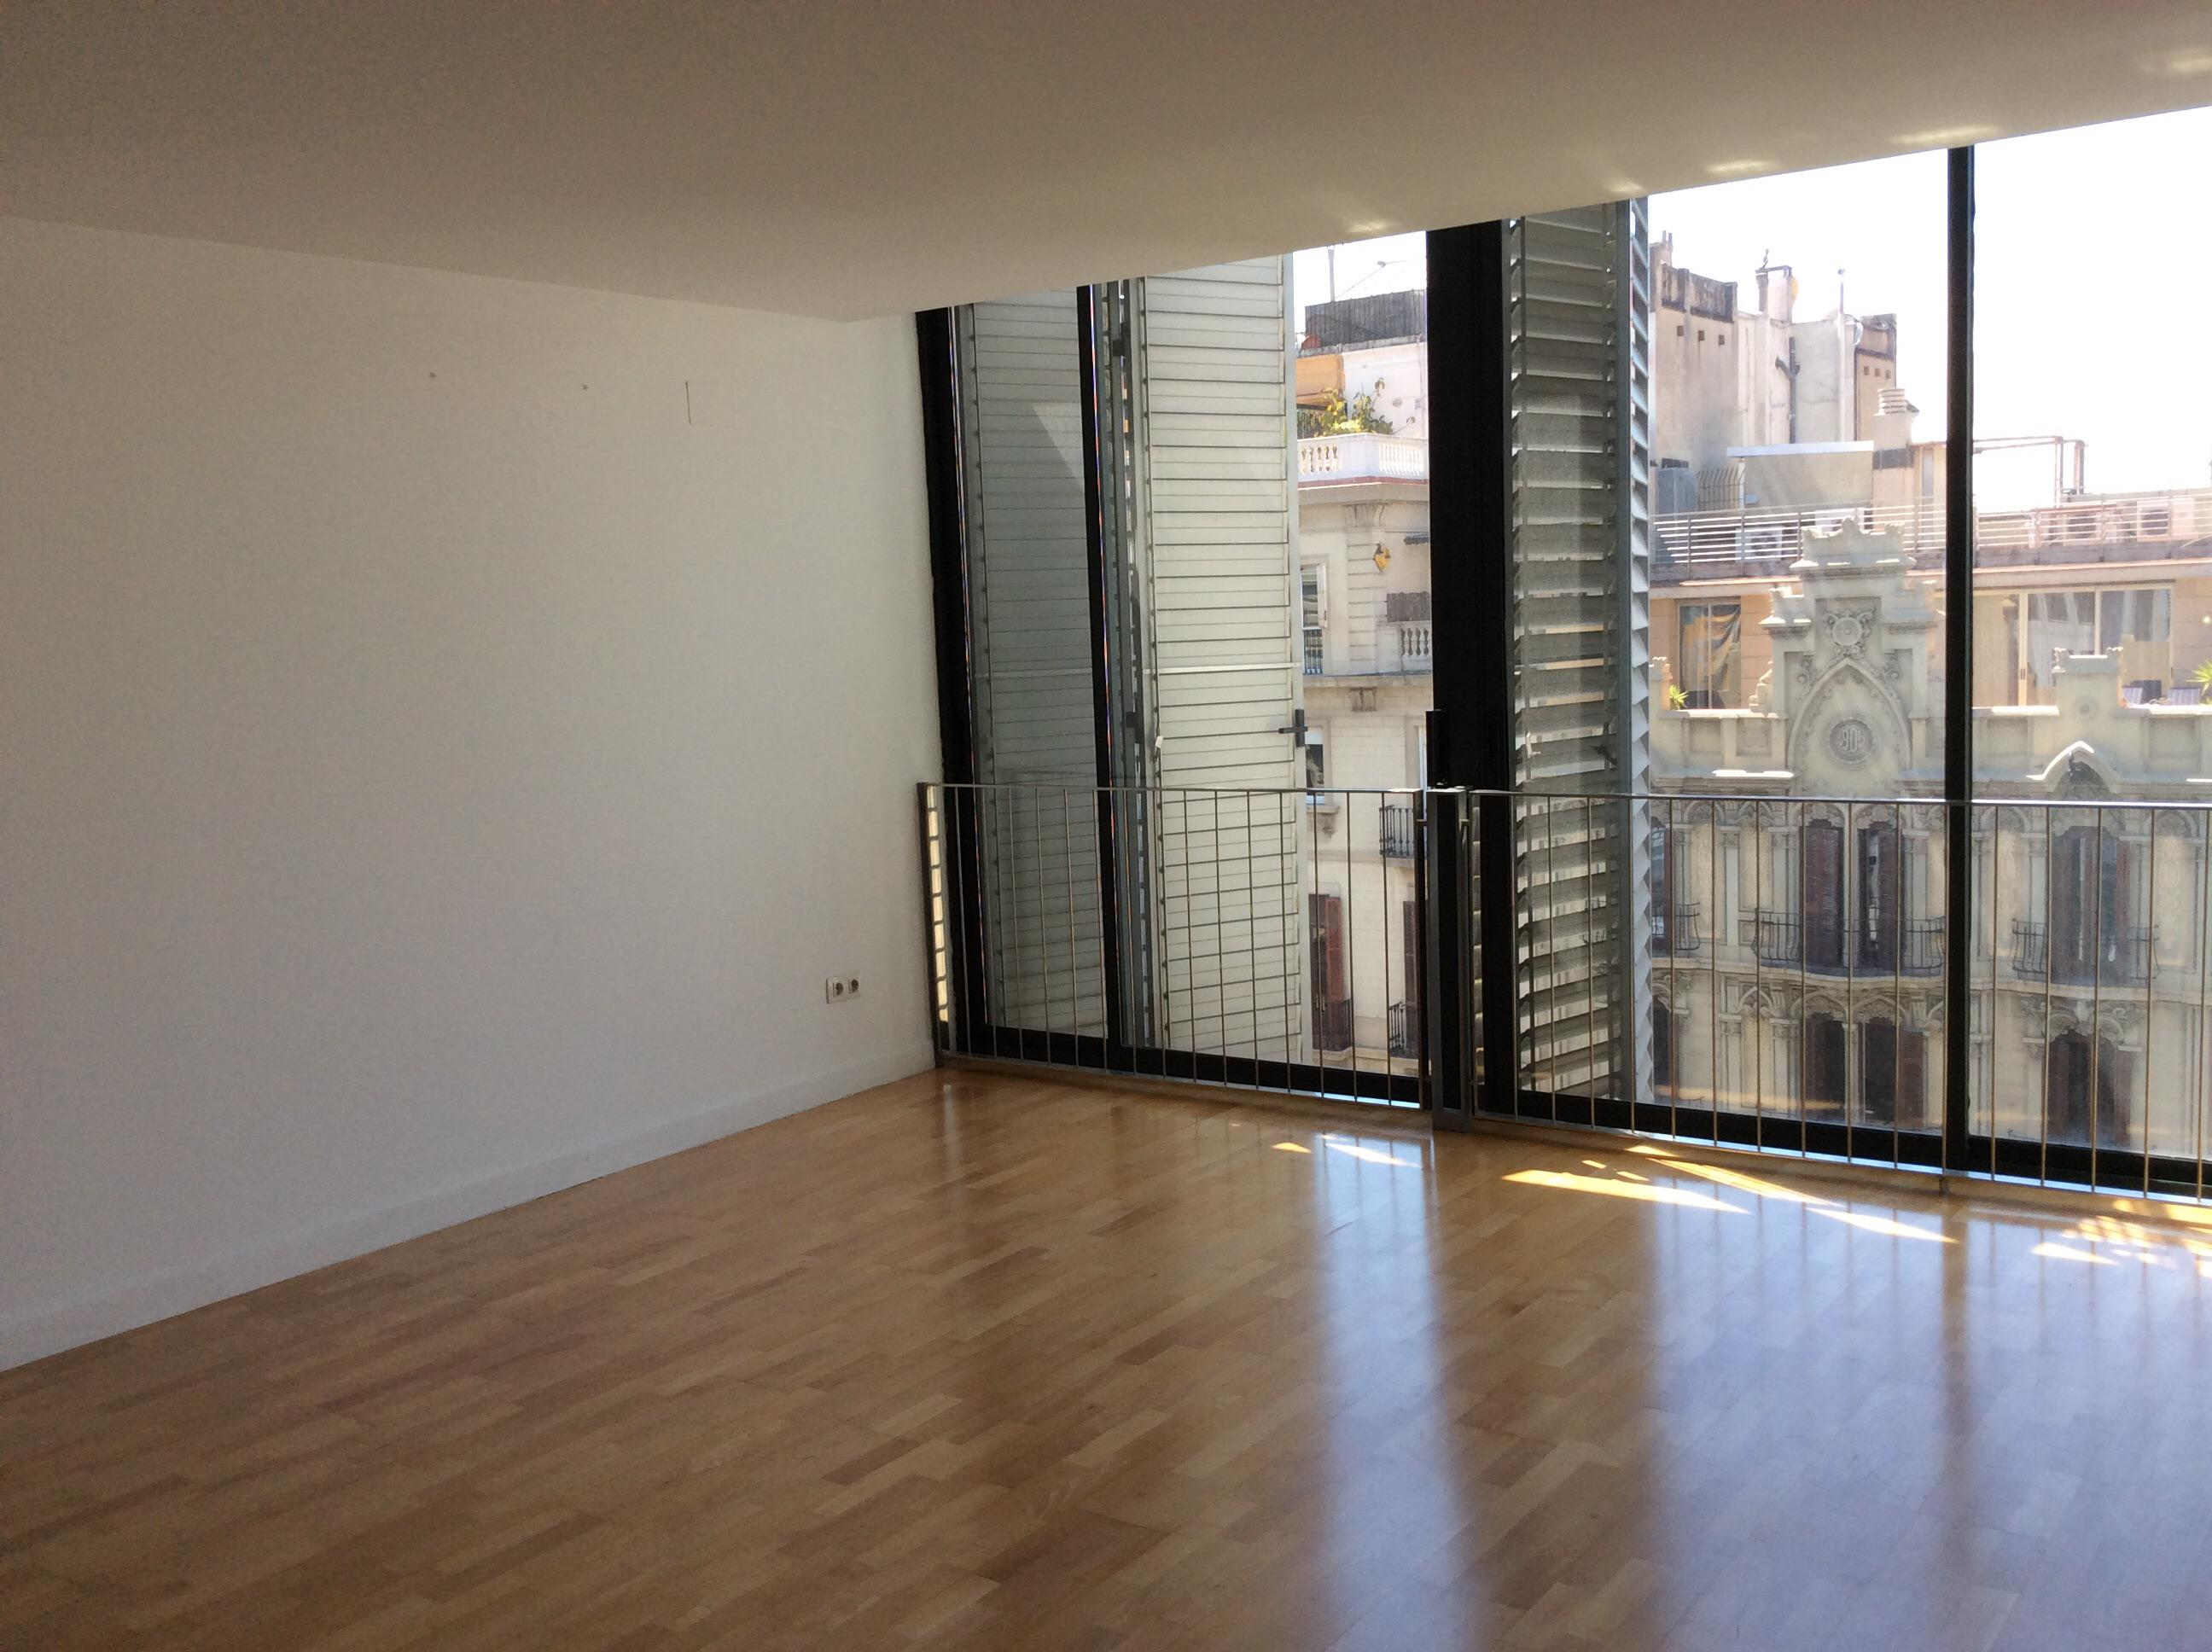 156407 Apartment for sale in Eixample, Dreta Eixample 3